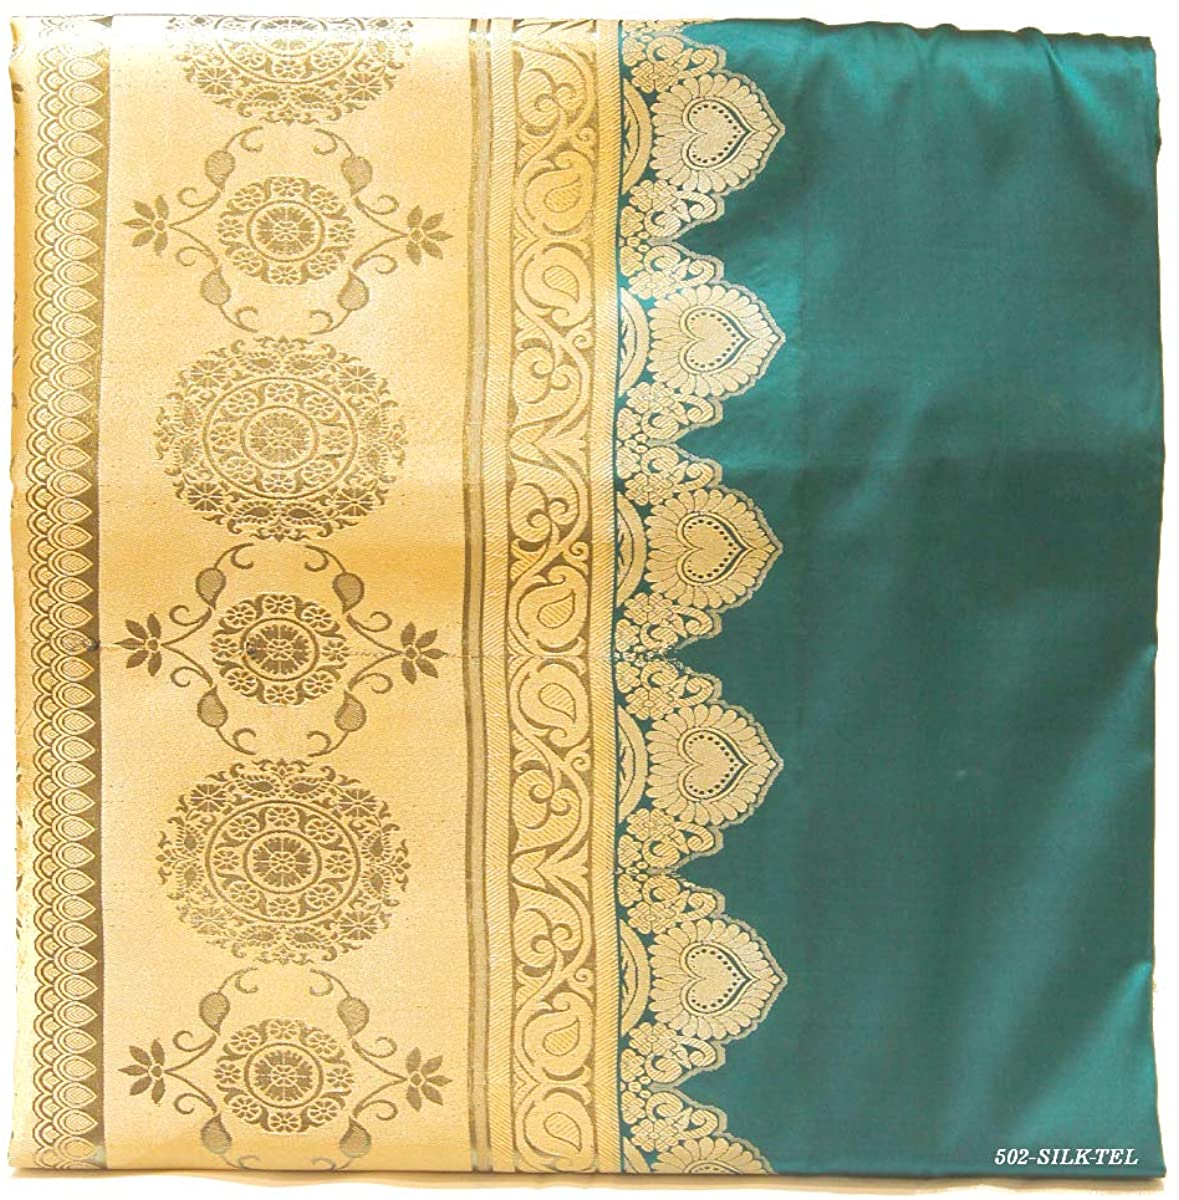 Pure Silk Saree for Women Kanchipuram Kanjivaram Pattu Sari Handloom Banarasi Silk Tussar Silk Mysore Silk Teal